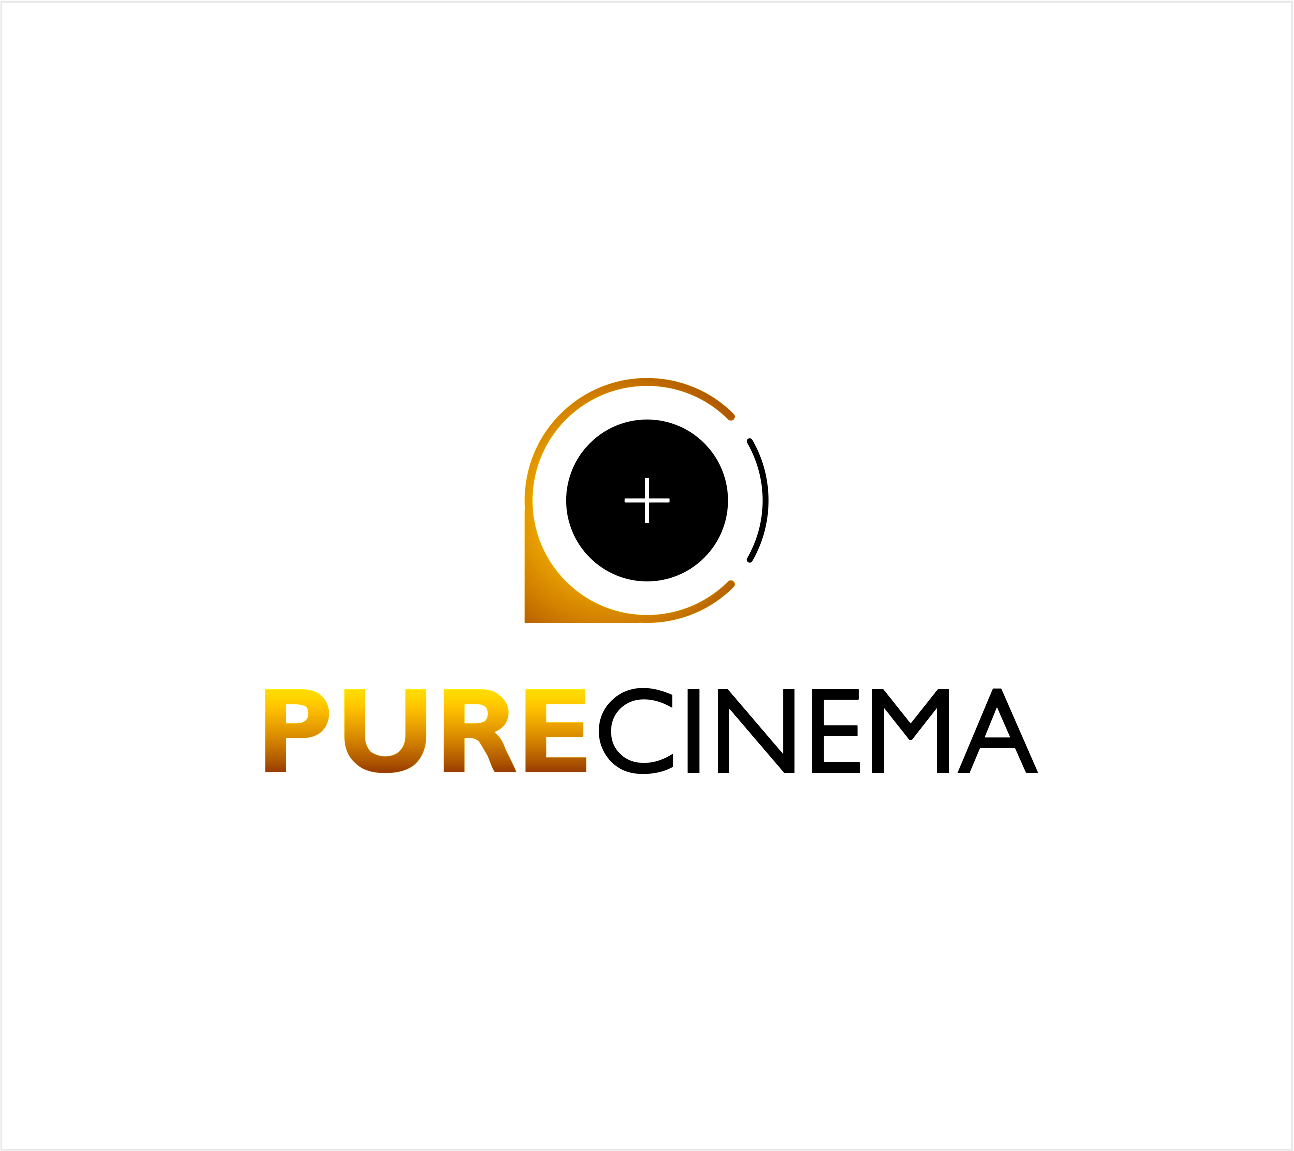 Logo Design by Armada Jamaluddin - Entry No. 31 in the Logo Design Contest Imaginative Logo Design for Pure Cinema.